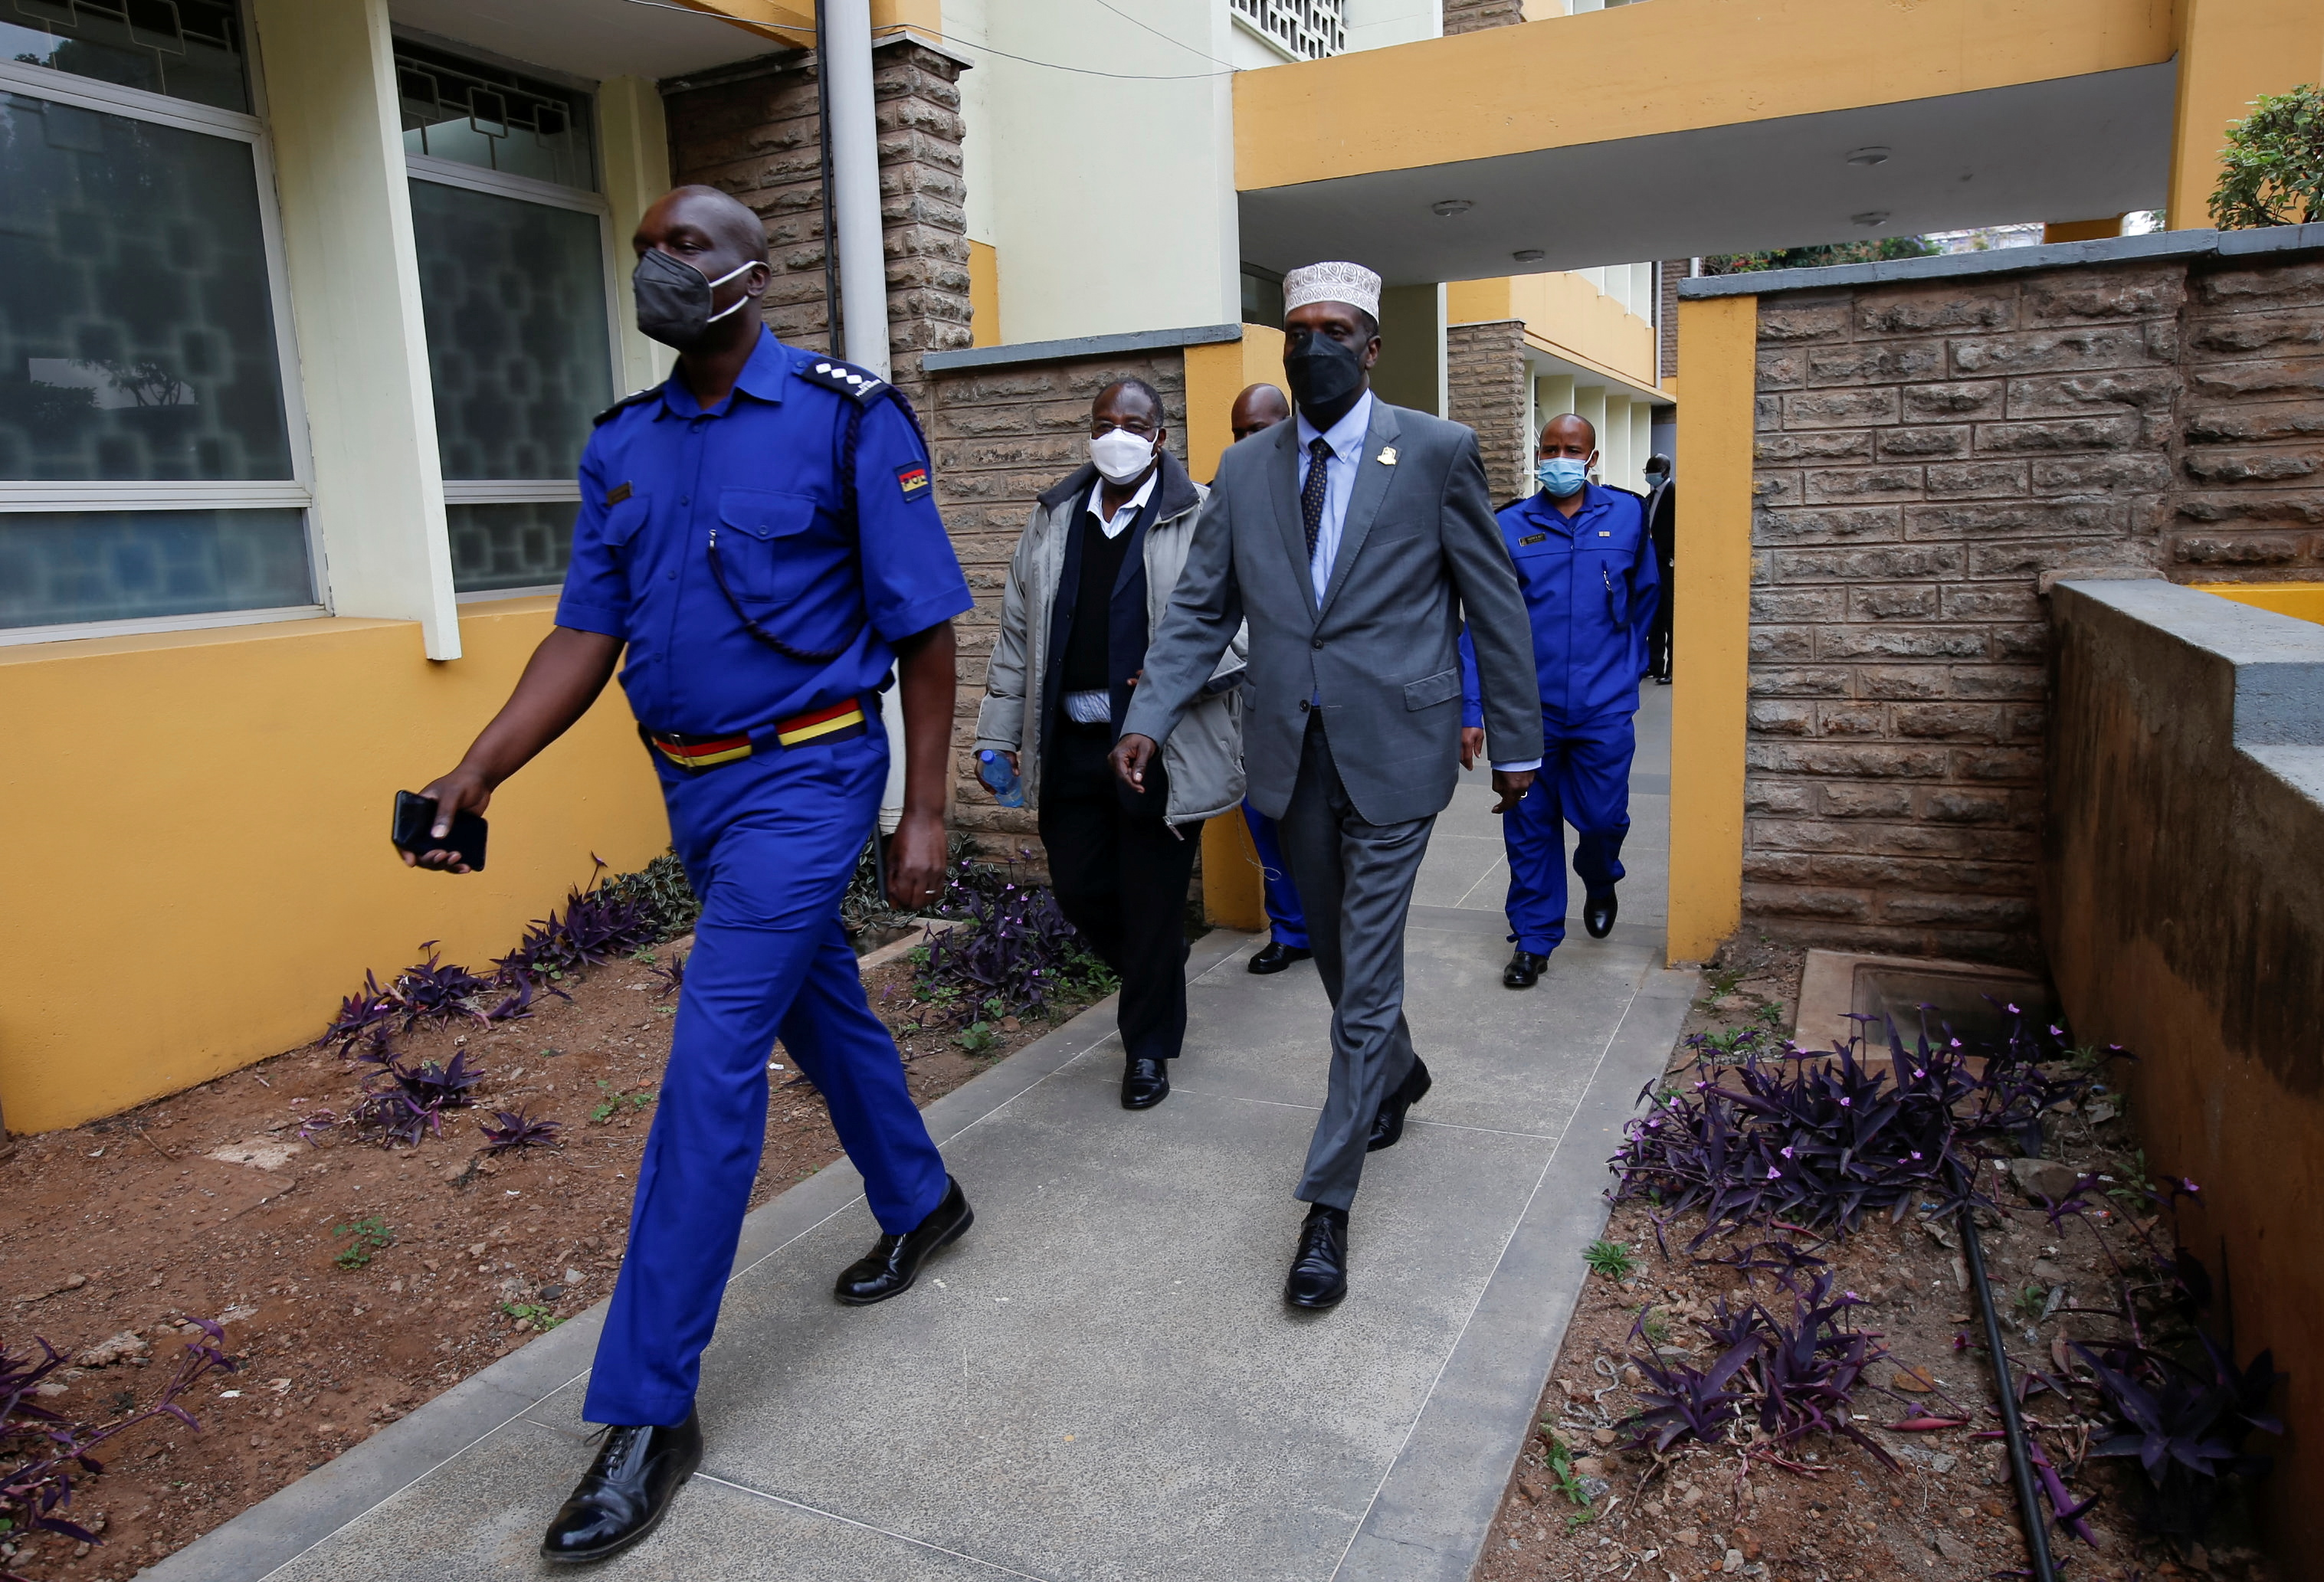 Former Kenyan sports minister Hassan Wario is escorted by security officers after he was found guilty of corruption charges in connection with the 2016 Rio Olympics funds, at the Milimani Law Courts in Nairobi, Kenya September 16, 2021. REUTERS/Monicah Mwangi